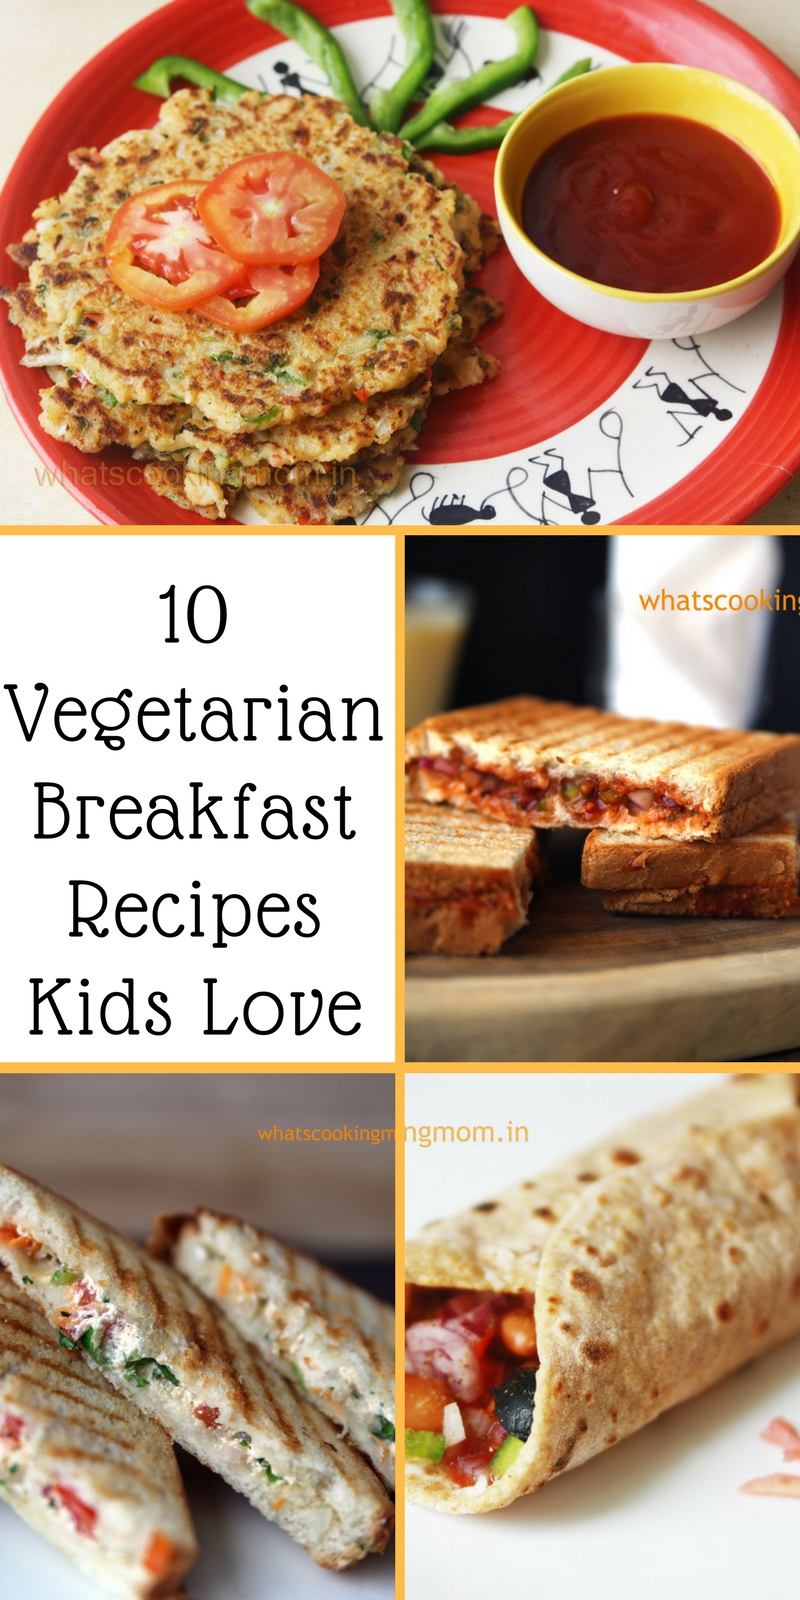 10 vegetarian breakfast recipes kids love